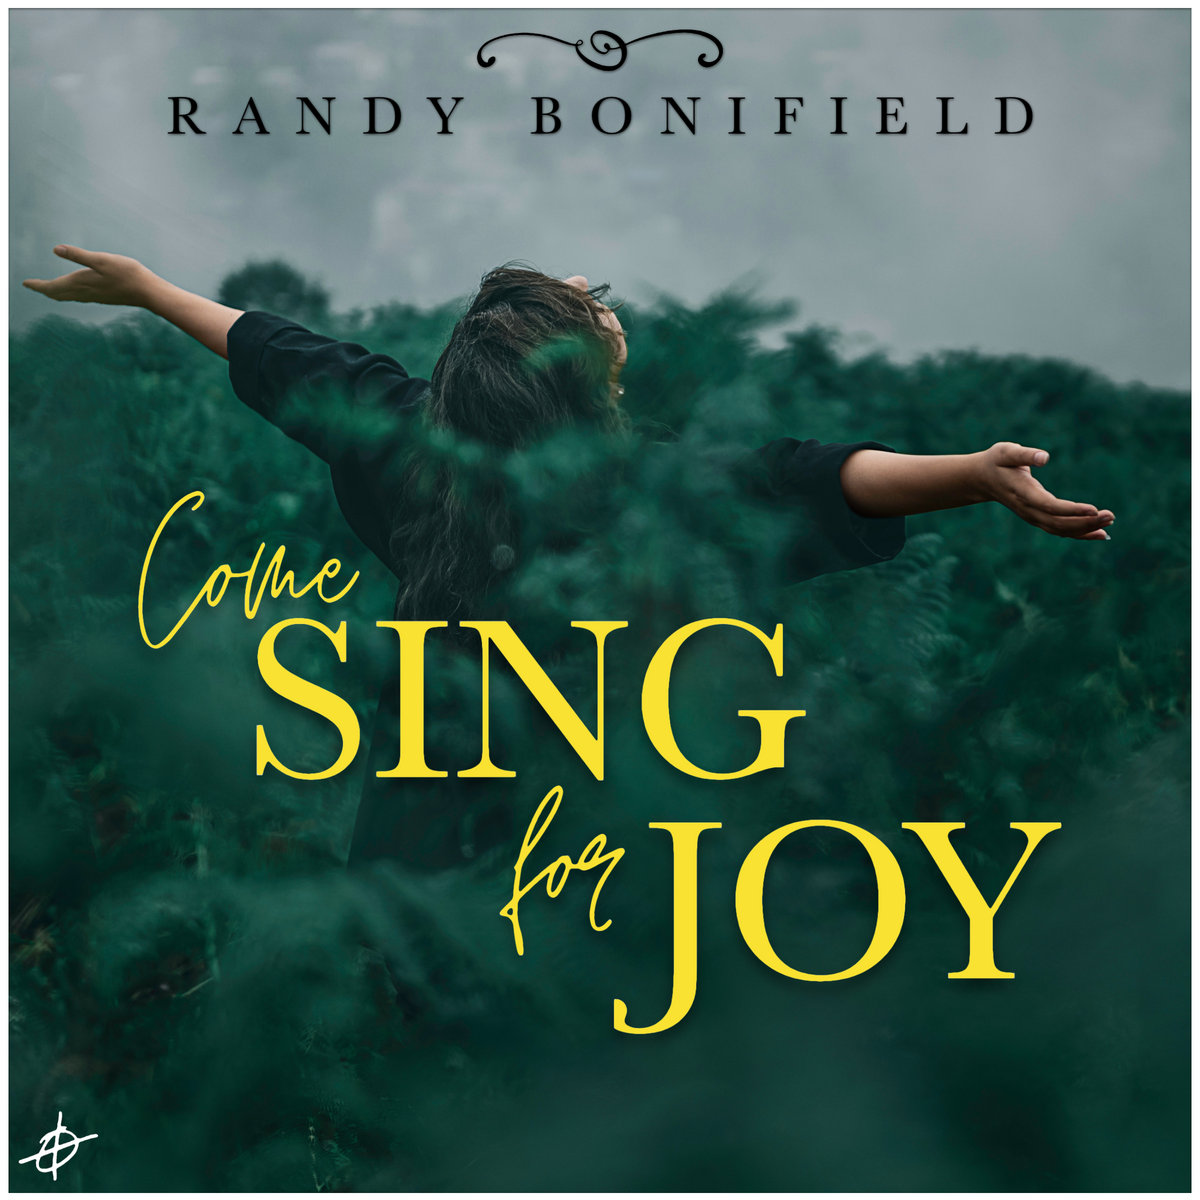 Come Sing for Joy by Randy Bonifield